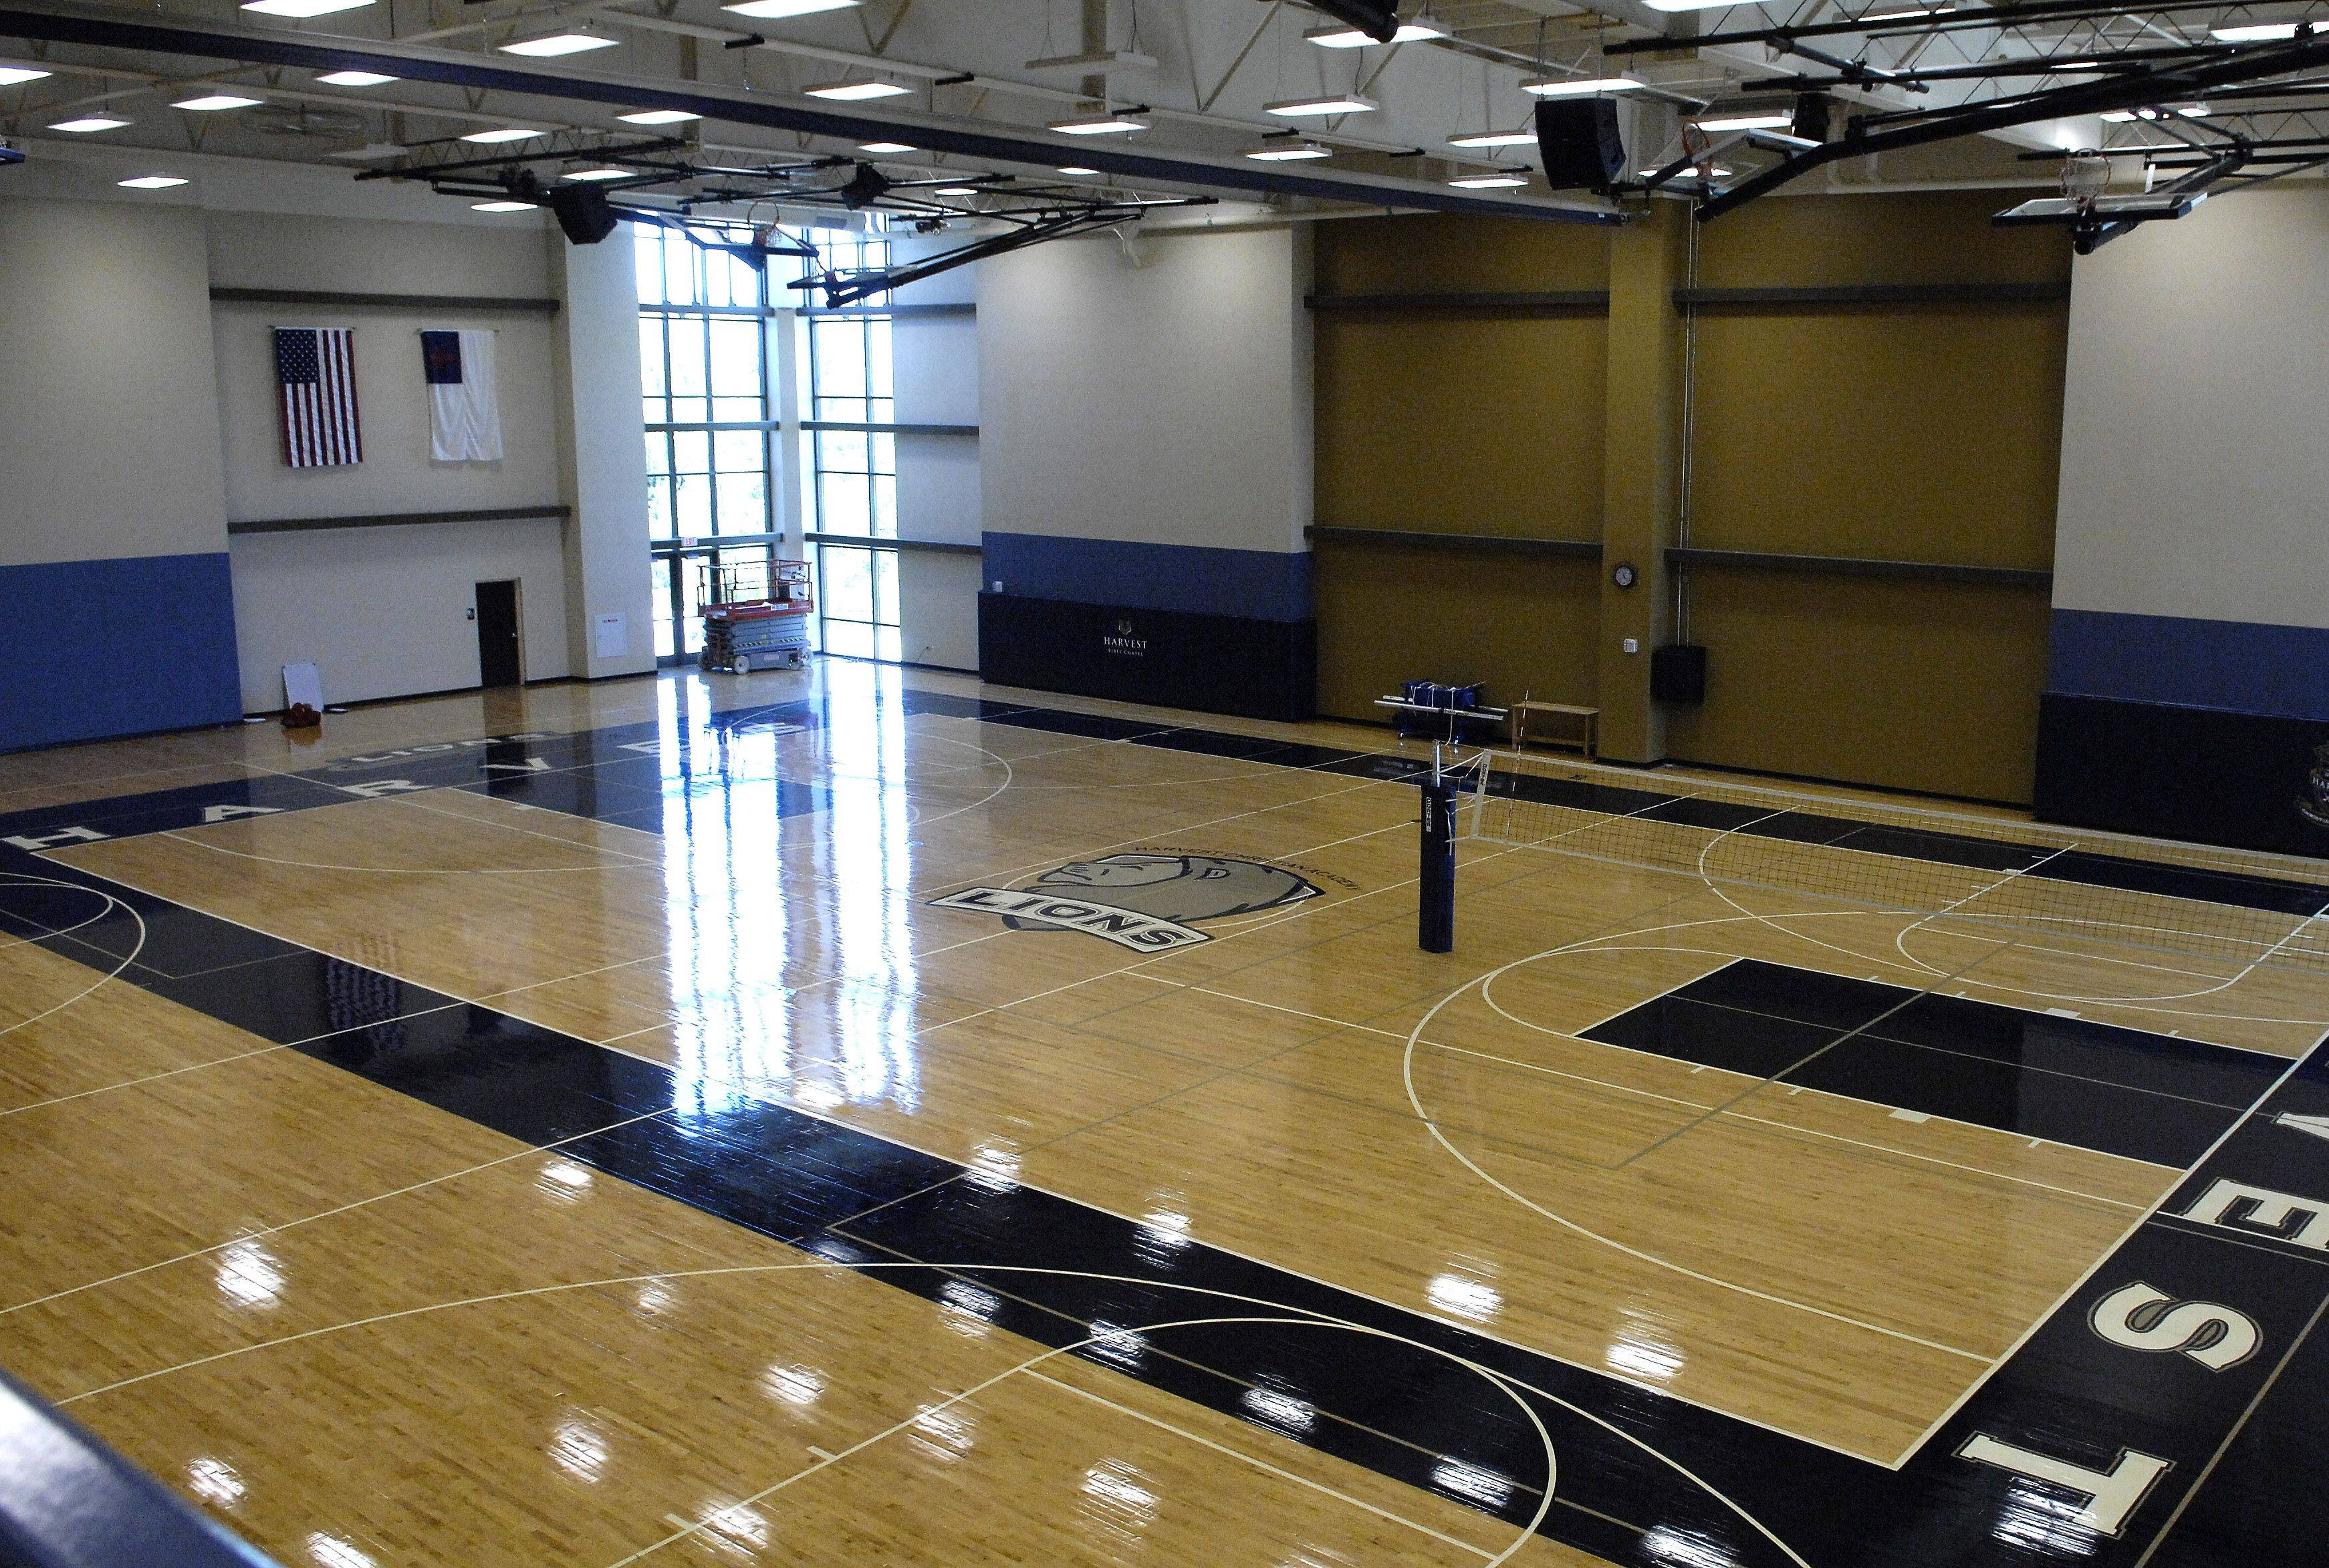 Harvest Christian Academy in Elgin is in its first year of IHSA sports participation and will play volleyball and basketball in the Mitchell Swaback Athletic Center.